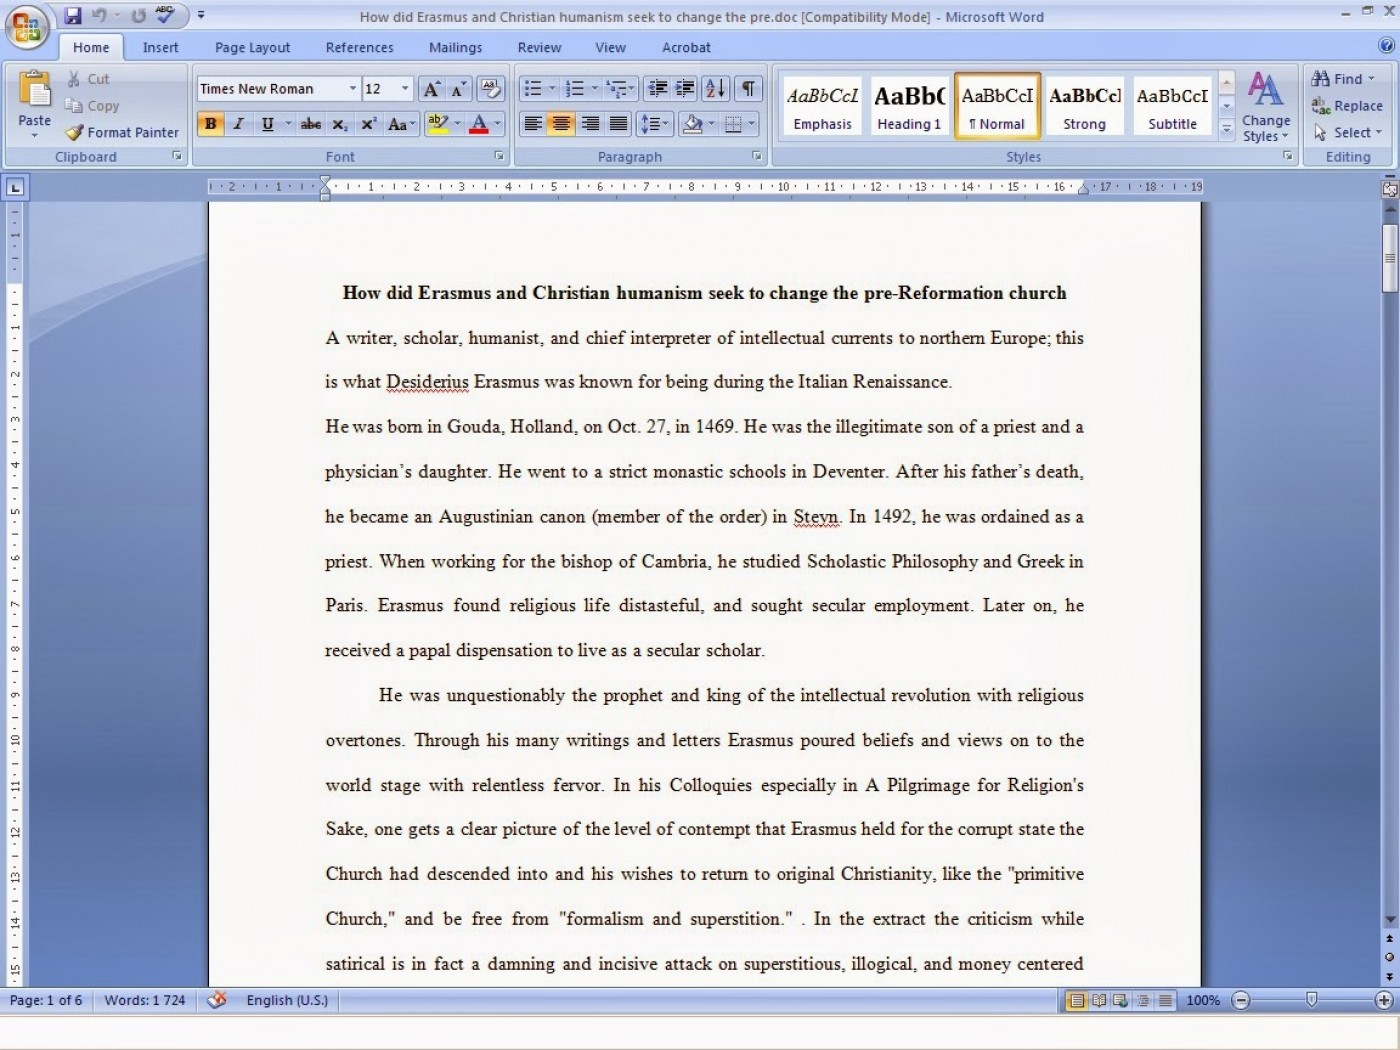 002 Essay Example Custom Unbelievable Online On Shopping Is Good Or Bad Help Free Chat Grader Jobs 1400